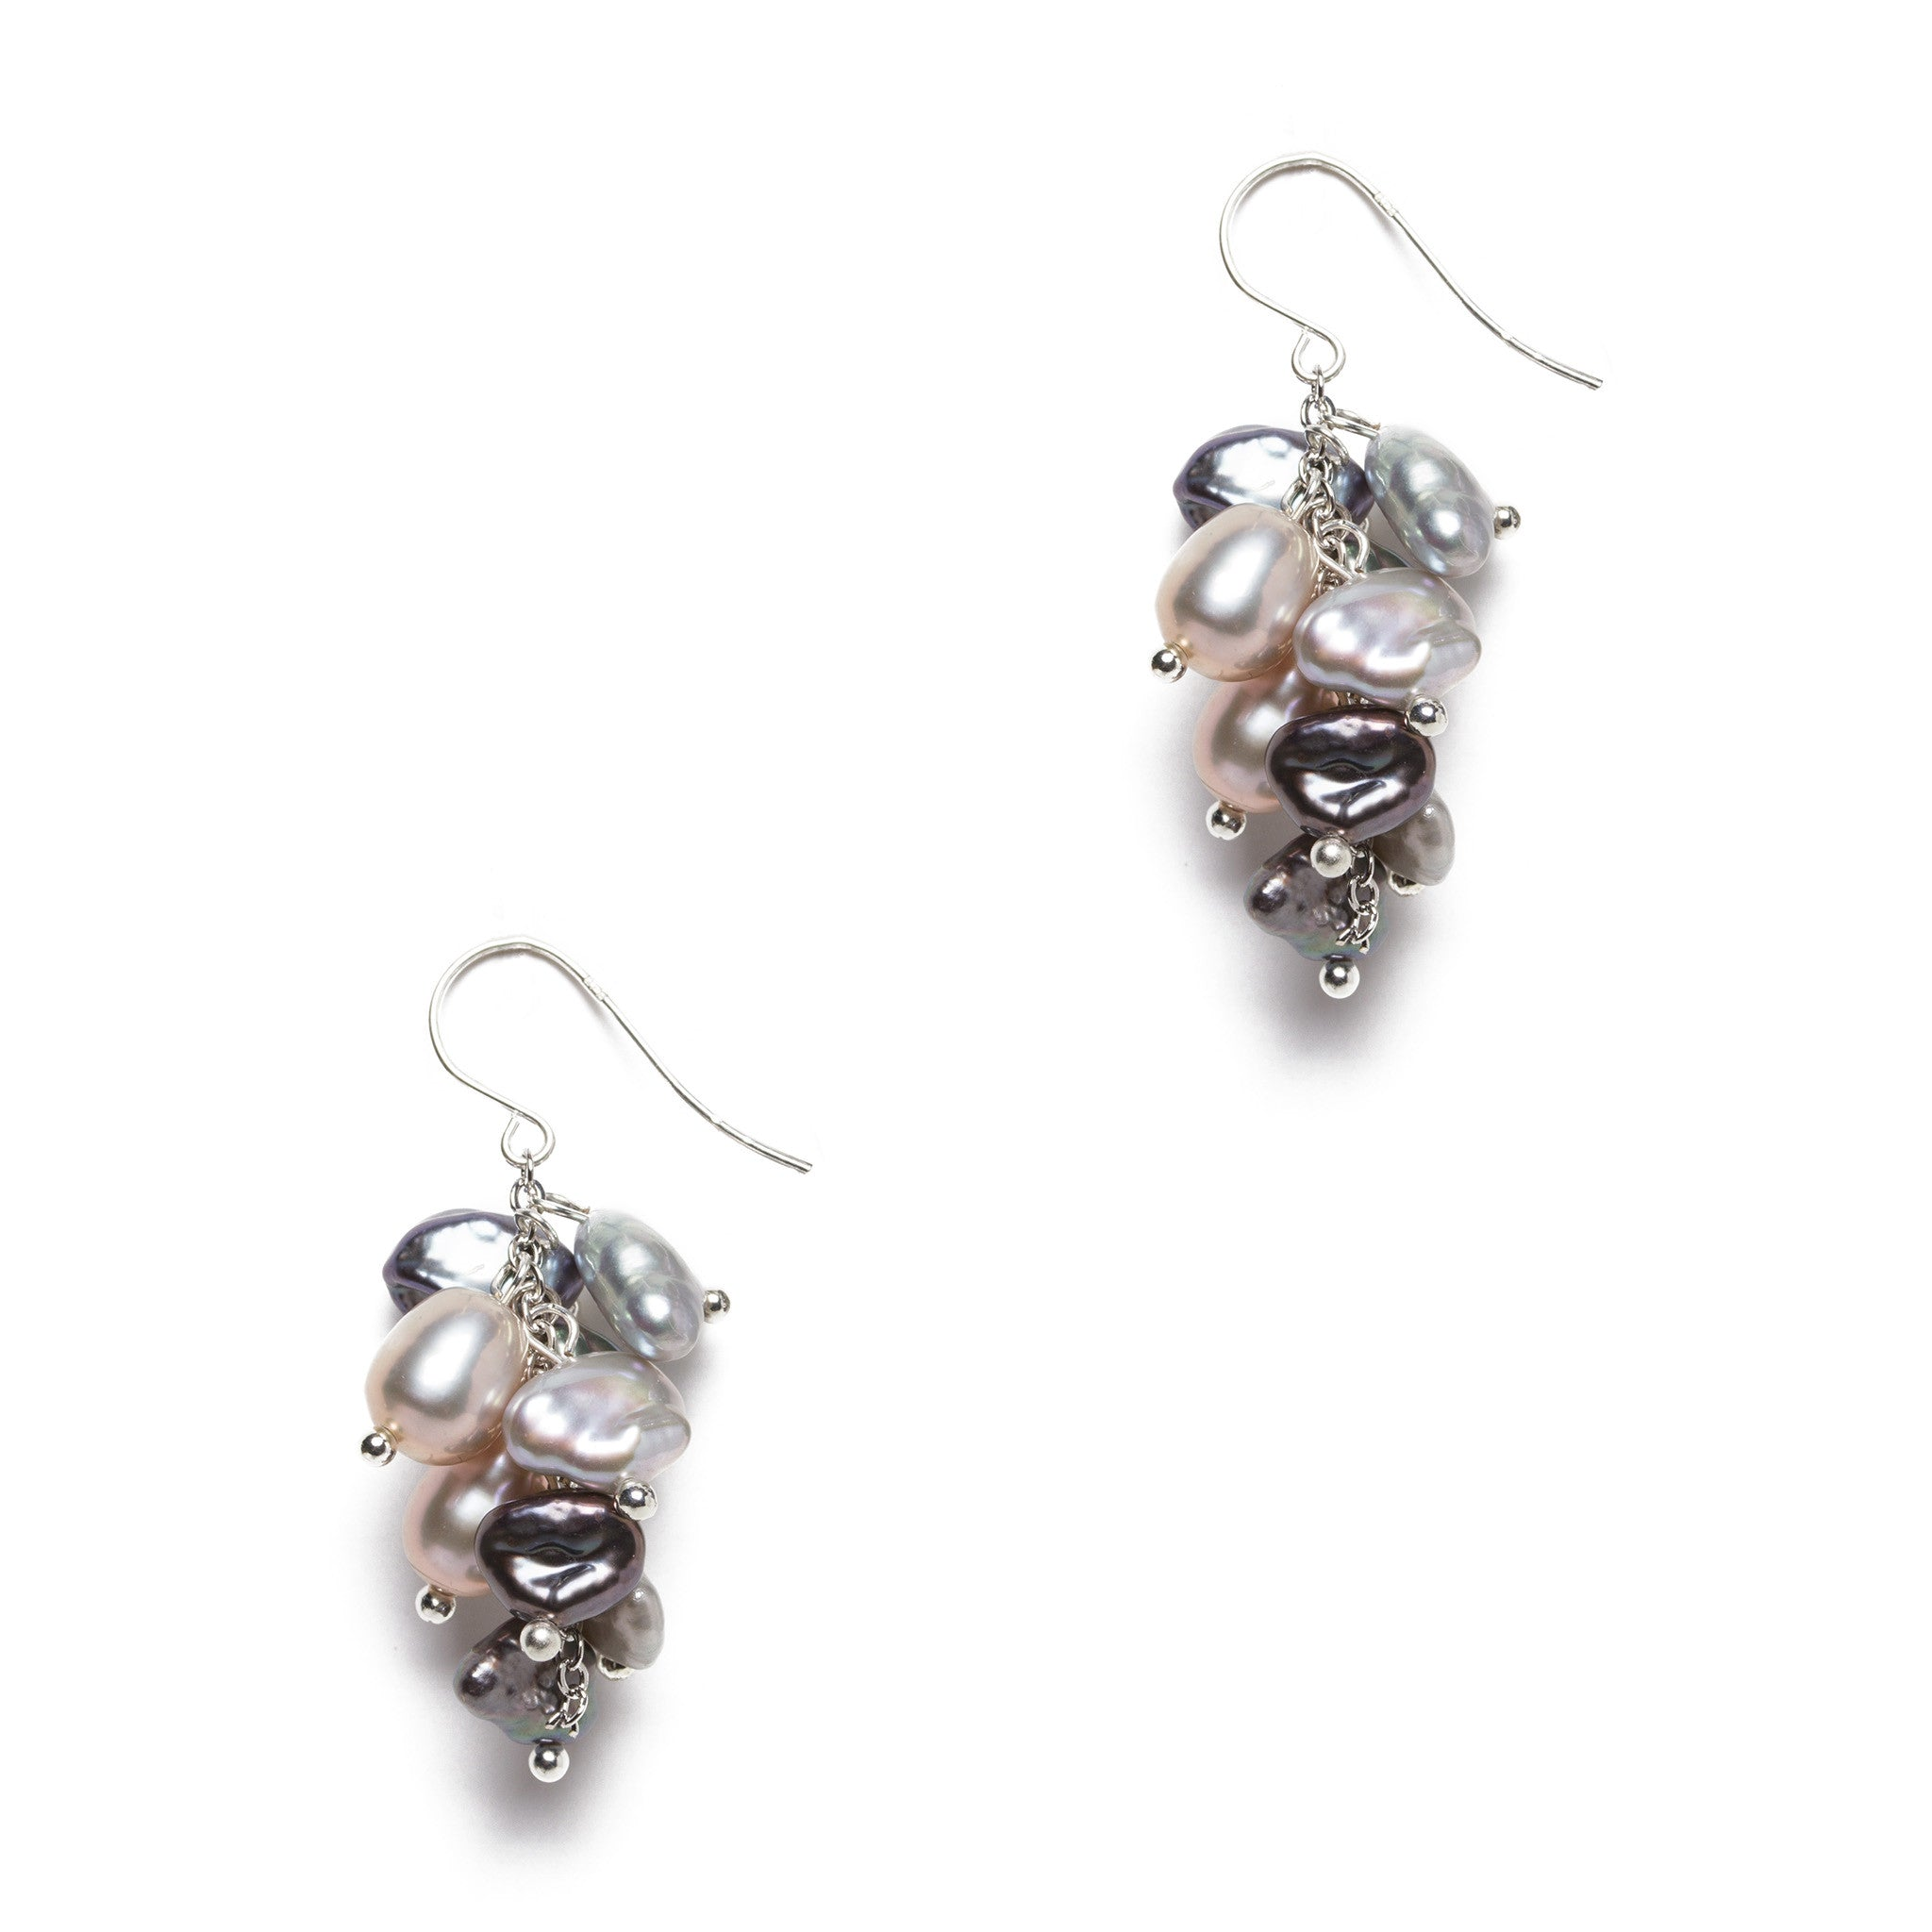 pearl jewelry earrings peral c dillards accessories women s zi silver